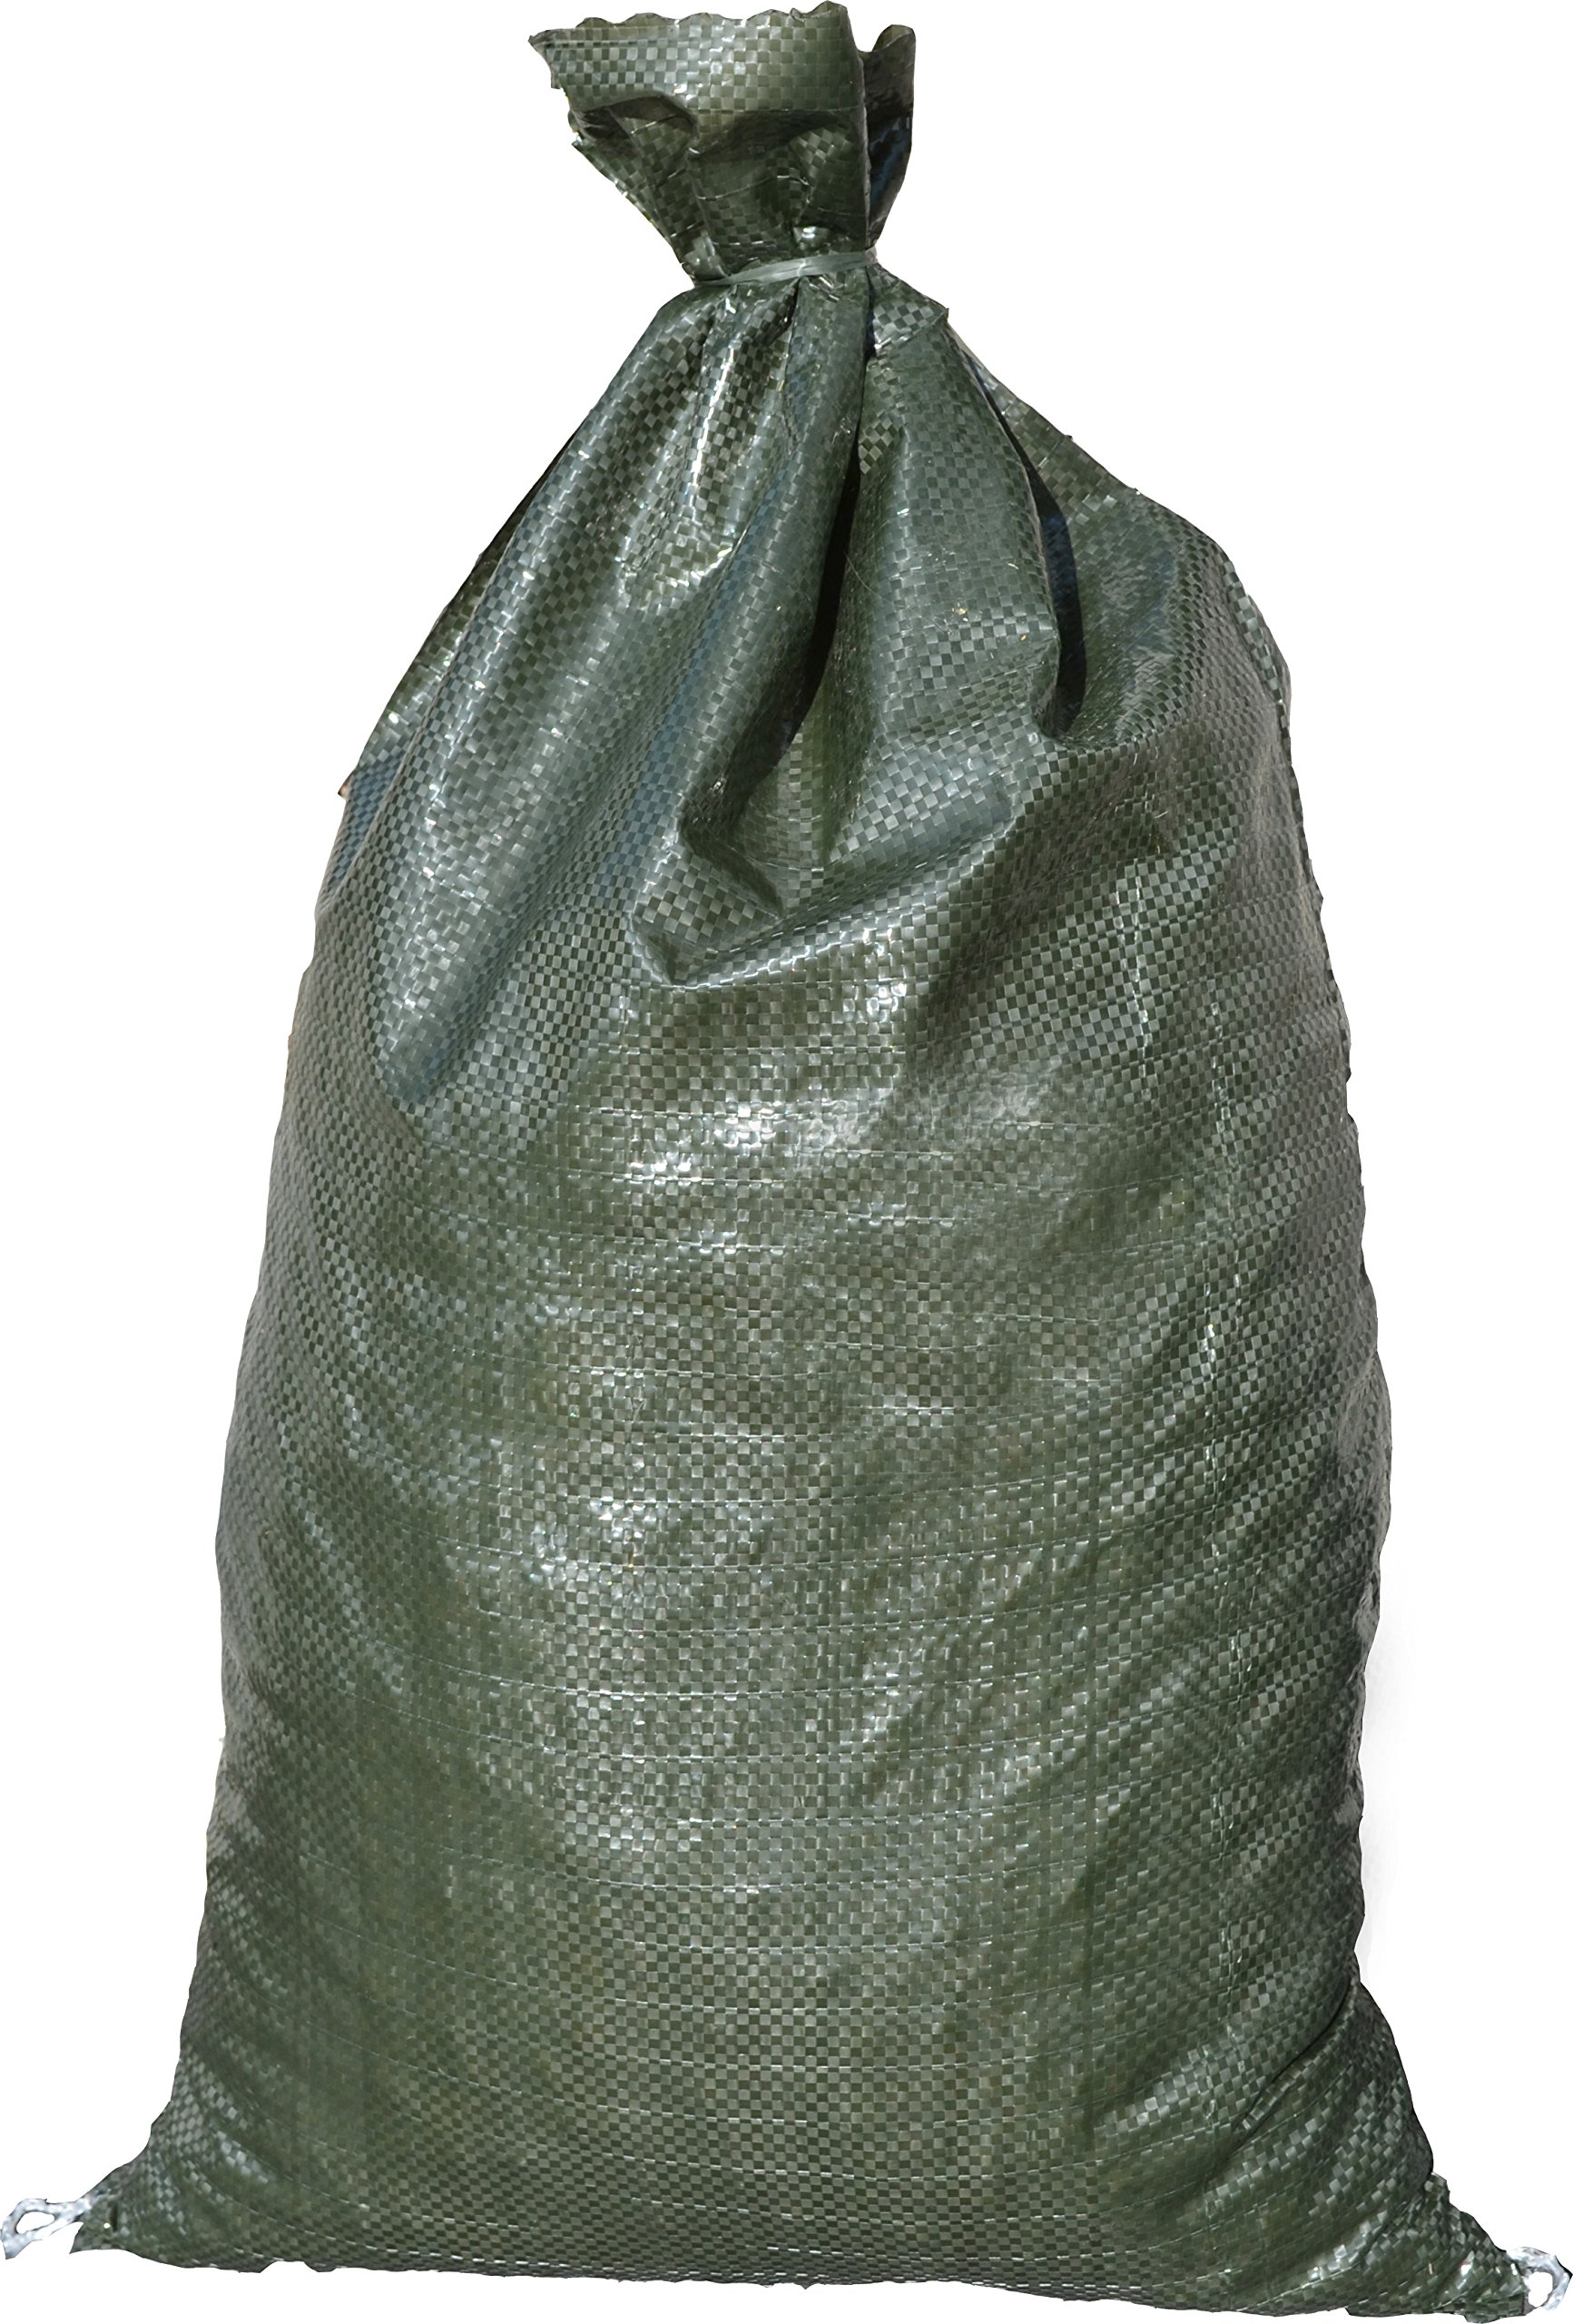 BEST PRICE 30 Green Sandbags --14x26 Sandbags For Sale Sandbag Bags Sand Bags by Sandbaggy